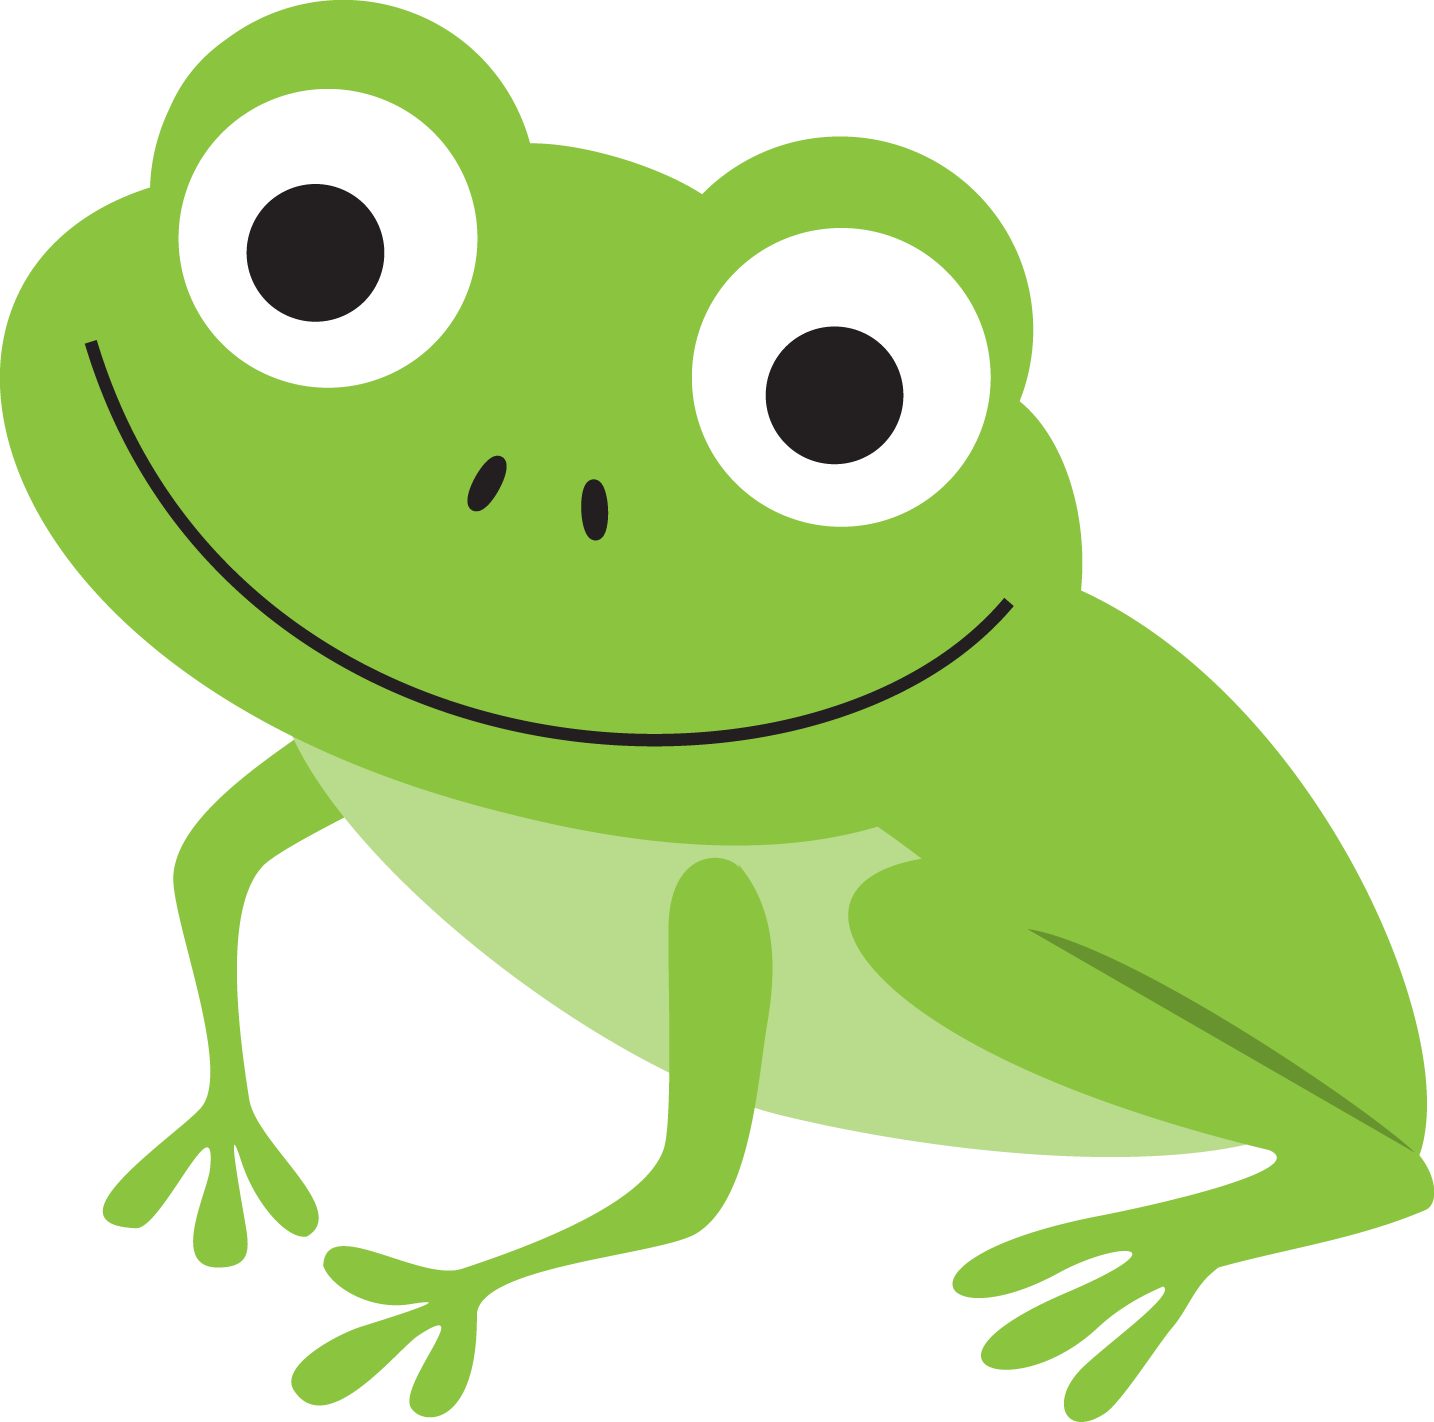 Clipart frog home, Clipart frog home Transparent FREE for ...